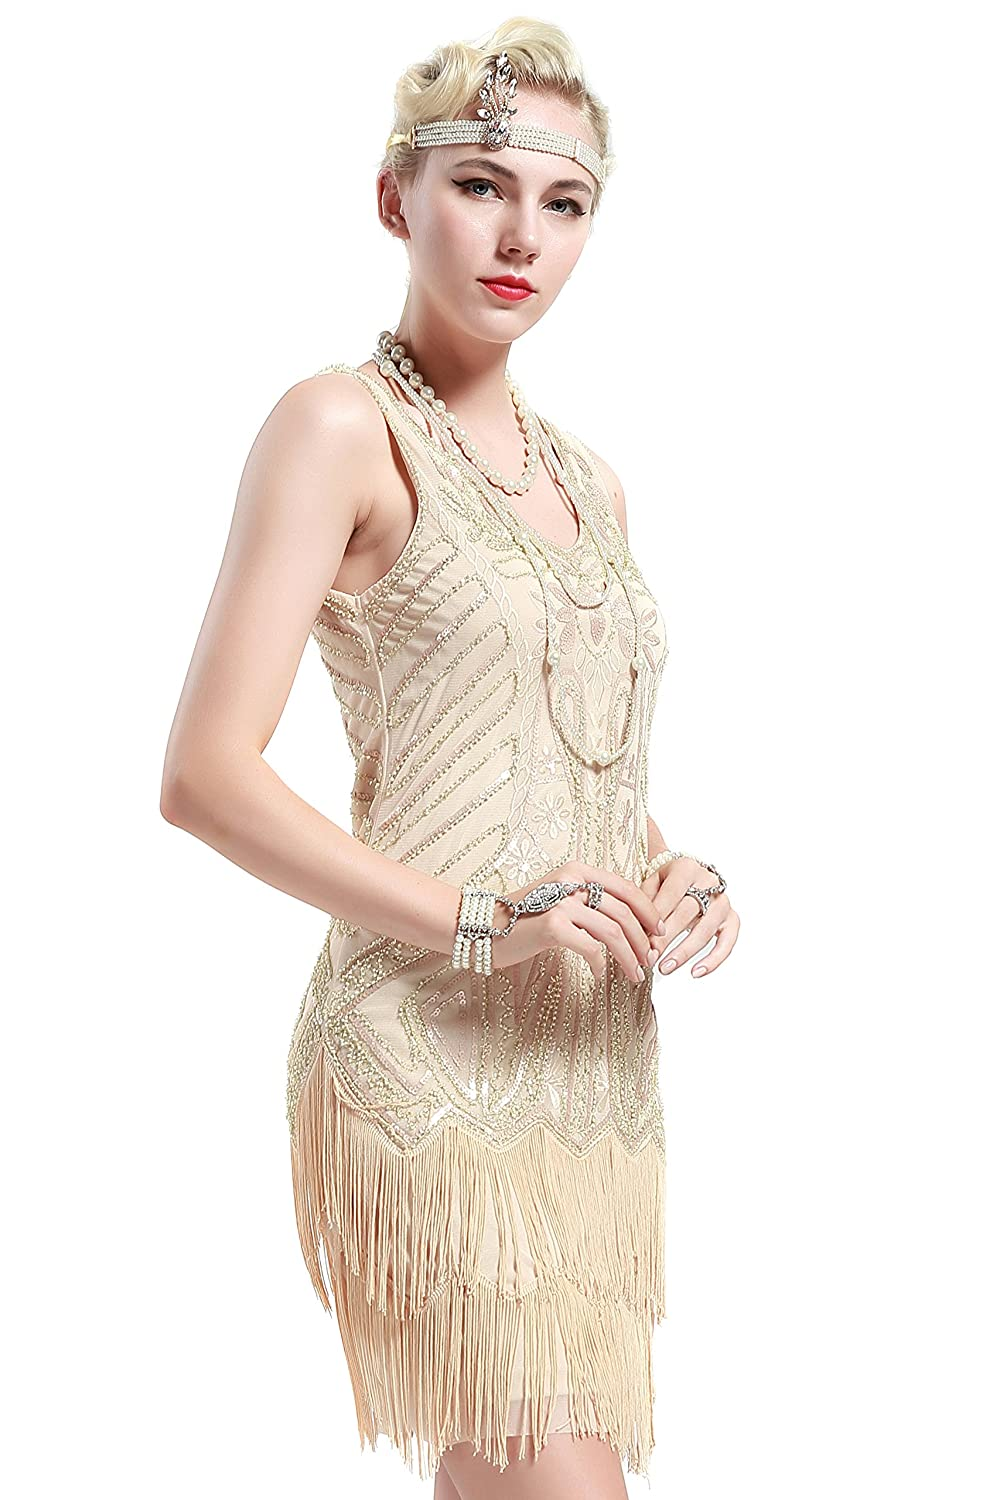 Downton Abbey Inspired Dresses Flapper Dresses 1920s V Neck Beaded Fringed Great Gatsby Dress $28.99 AT vintagedancer.com